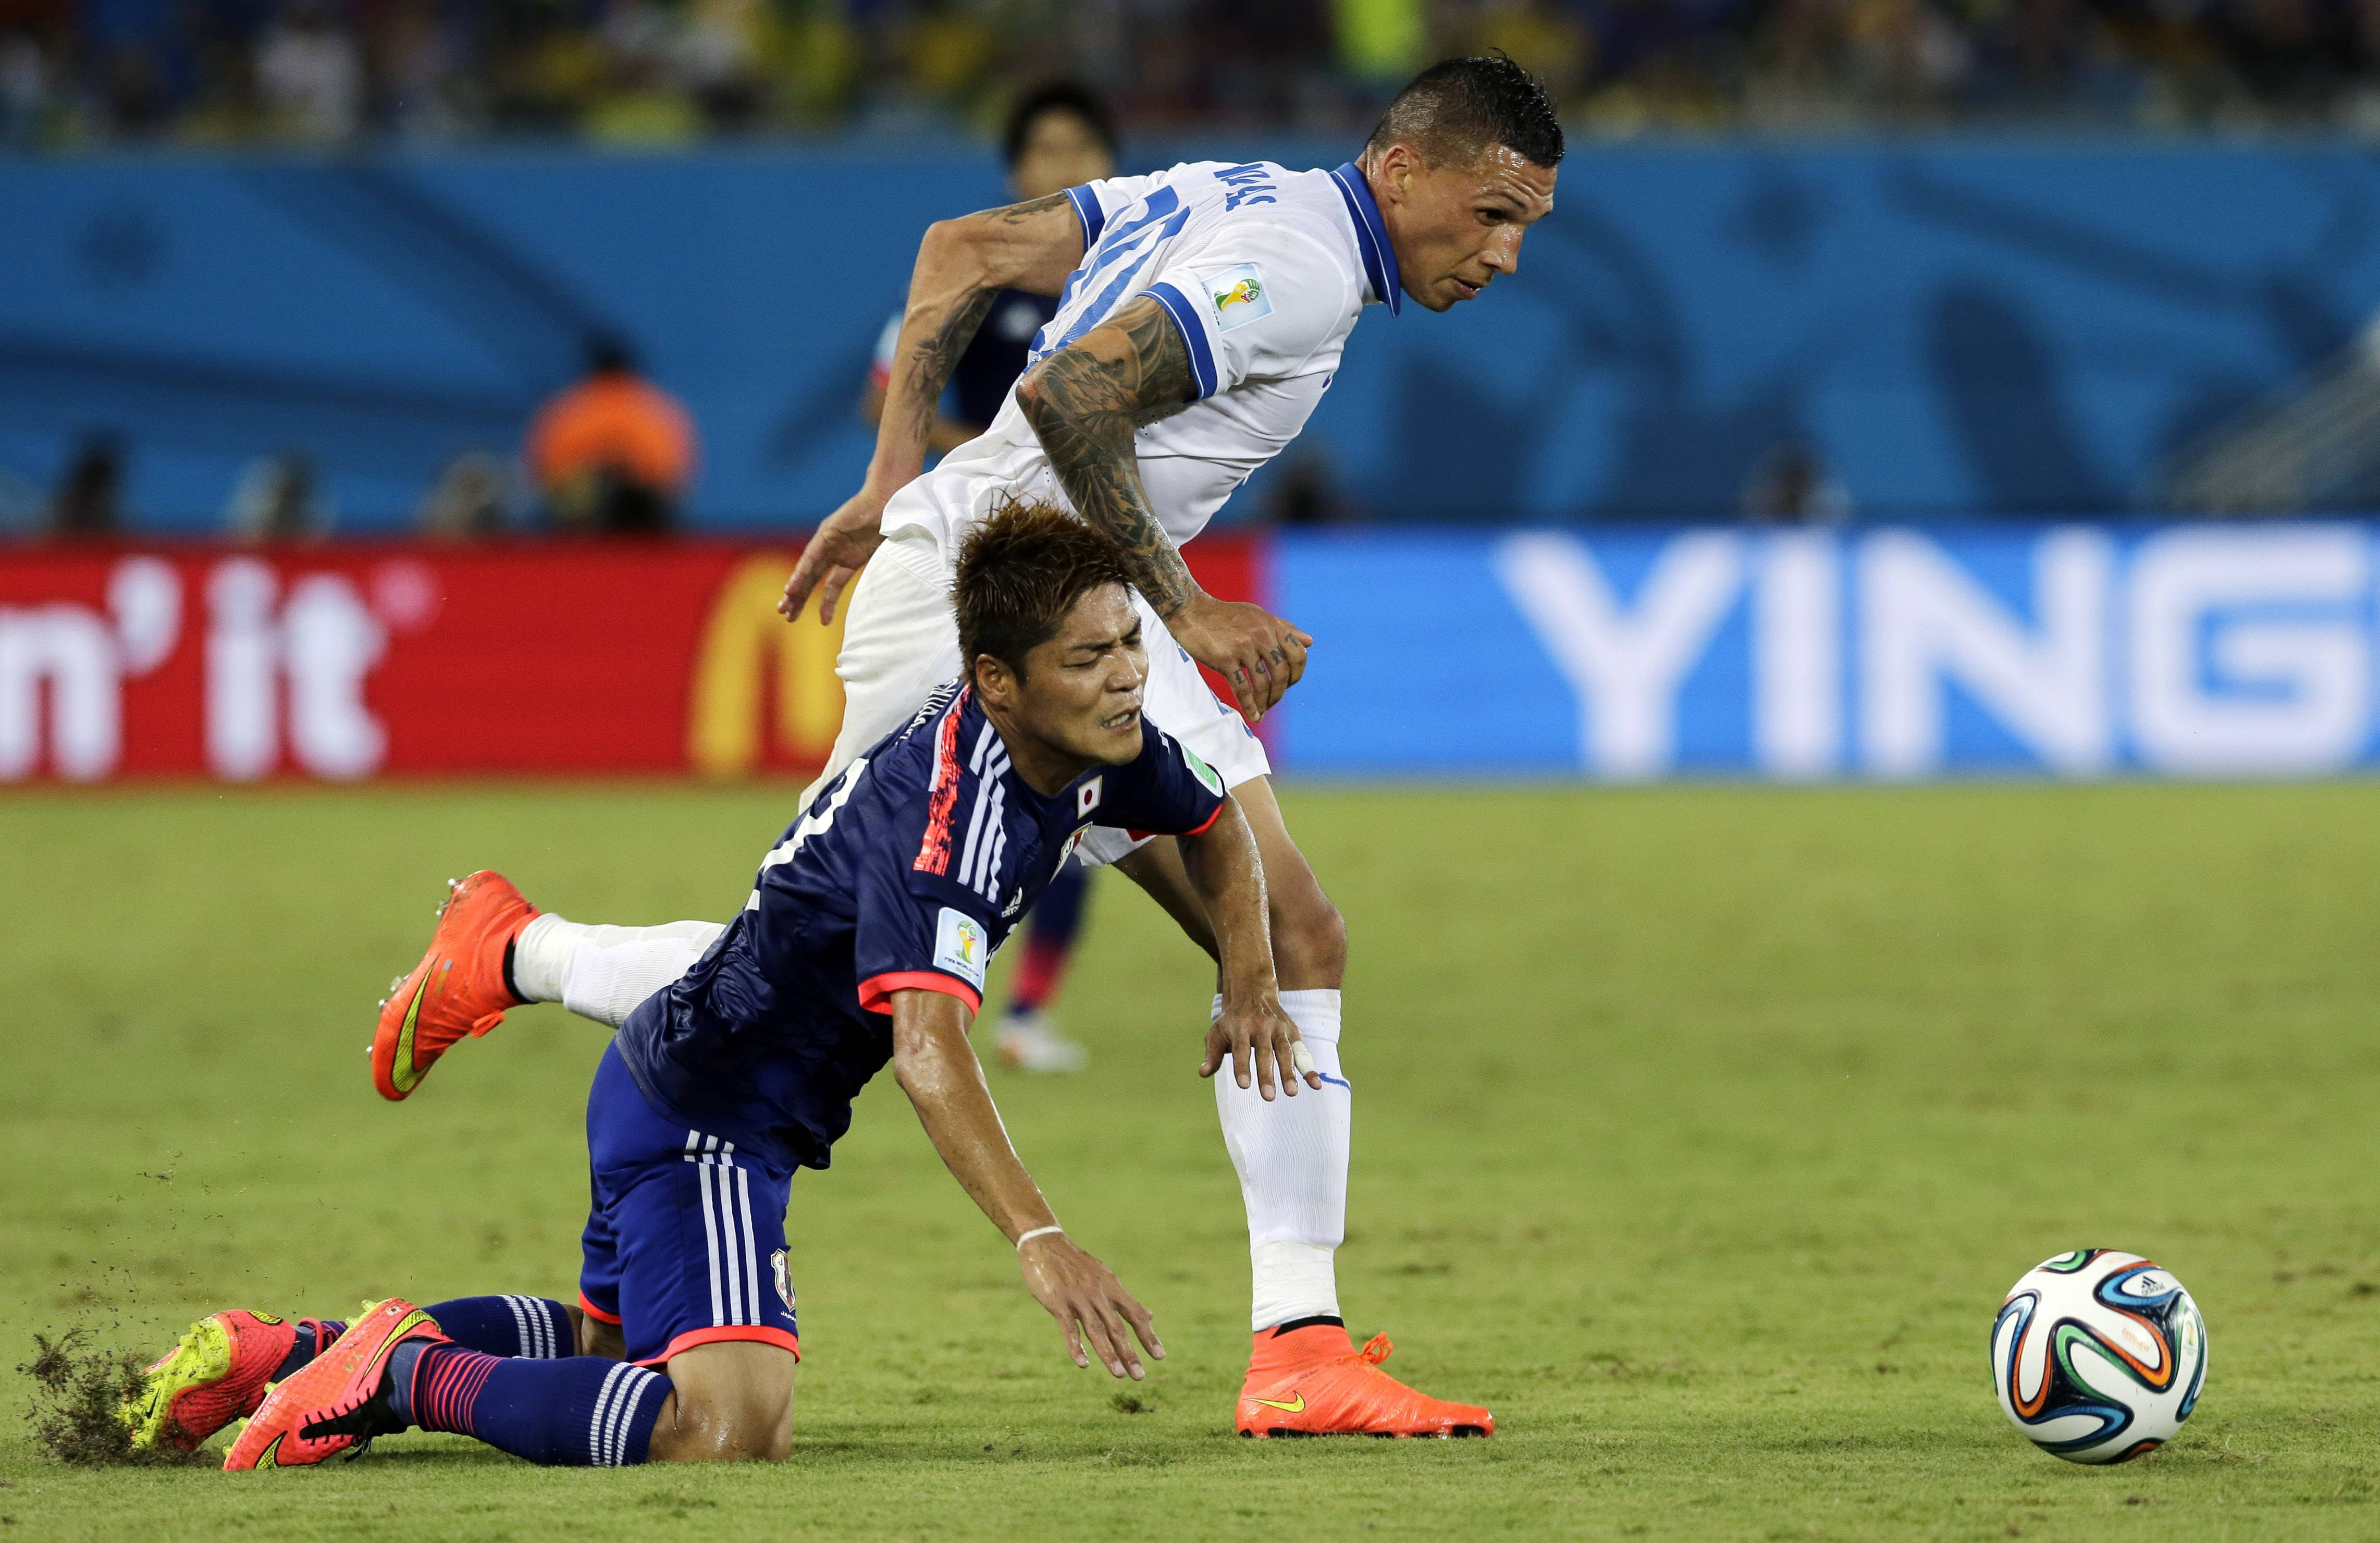 Greece's Jose Holebas, right, pulls down Japan's Yoshito Okubo while chasing the ball during the group C World Cup soccer match between Japan and Greece at the Arena das Dunas in Natal, Brazil, Thursday, June 19, 2014.